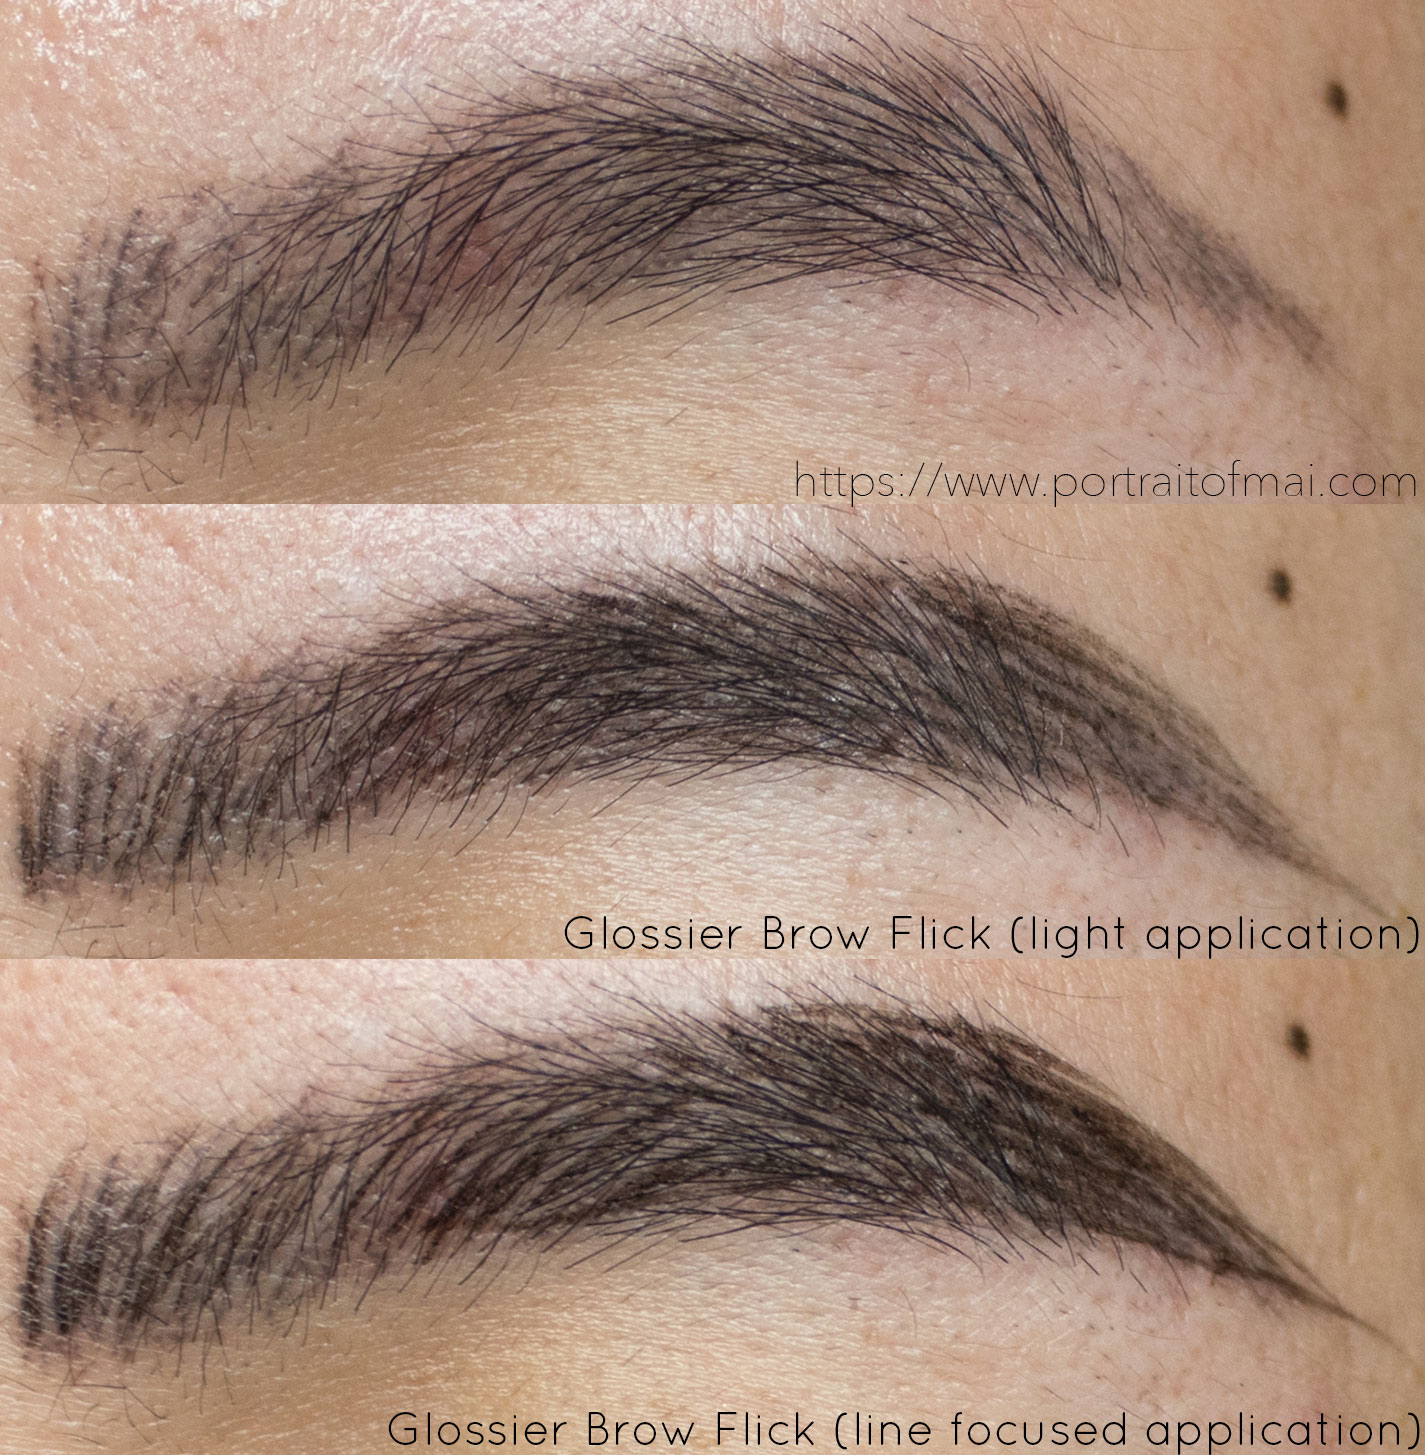 Glossier Brow Flick in Black Swatch